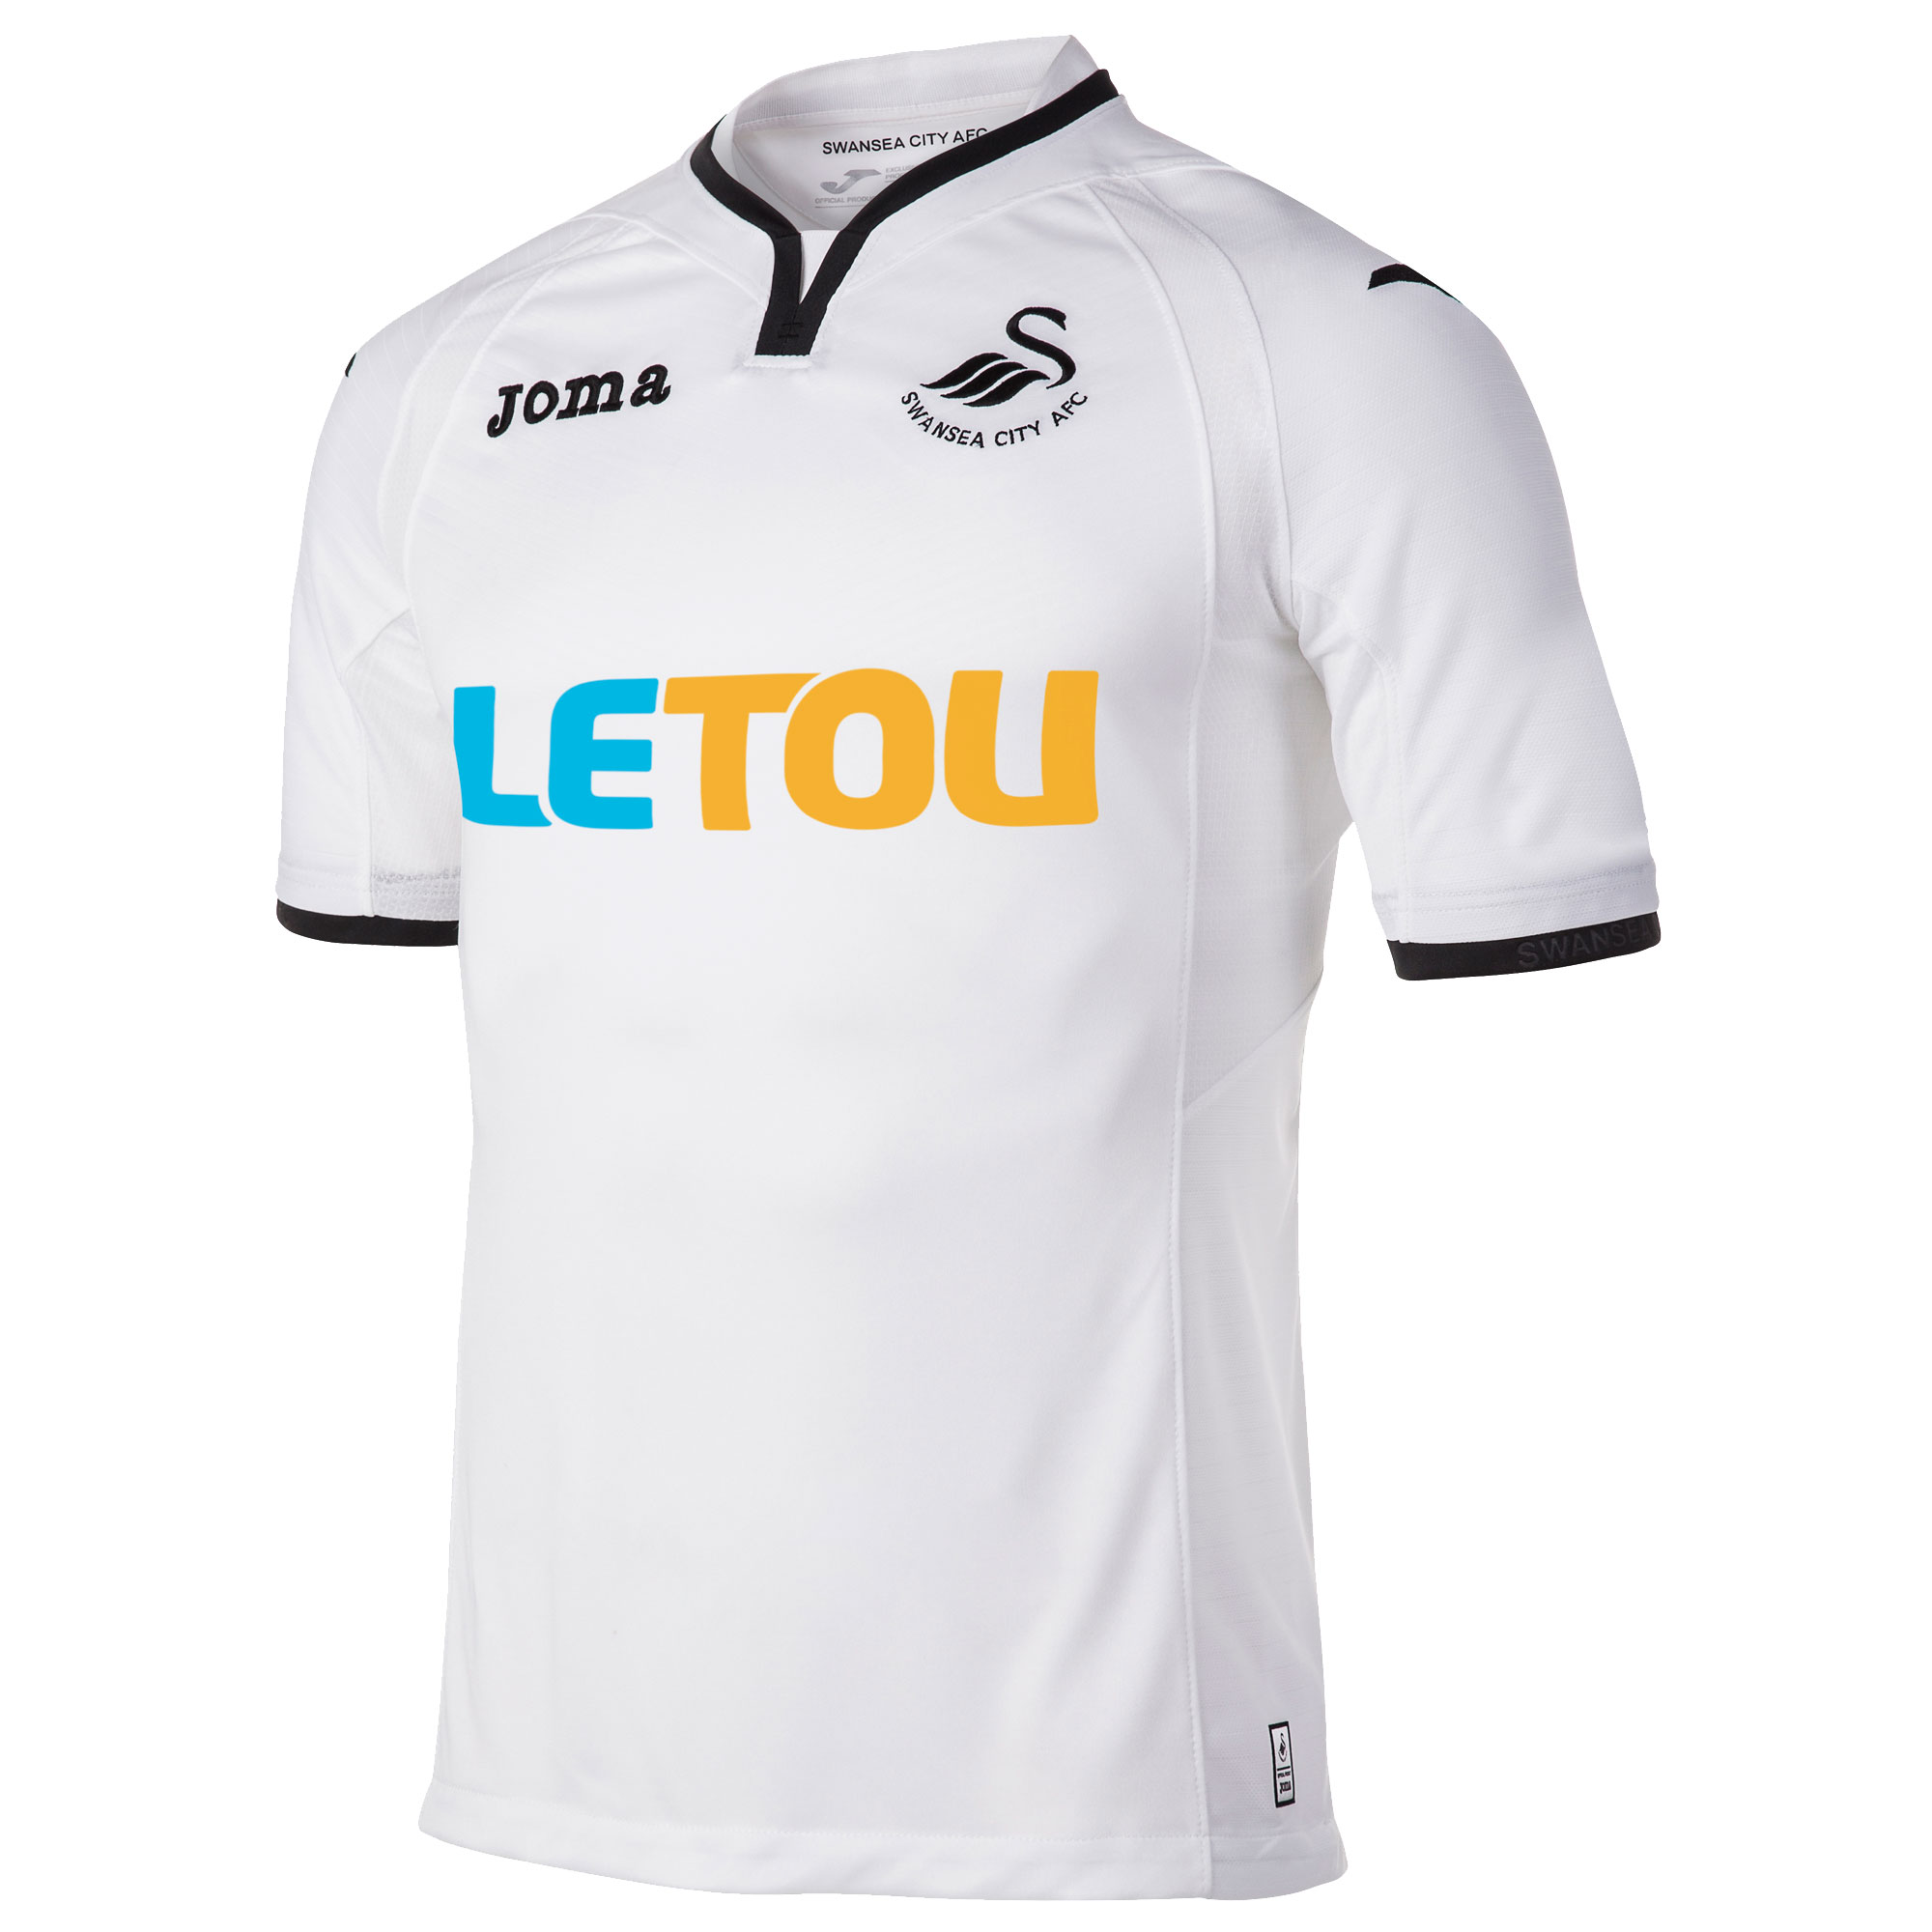 Swansea City Home Jersey 2017 / 2018 - L